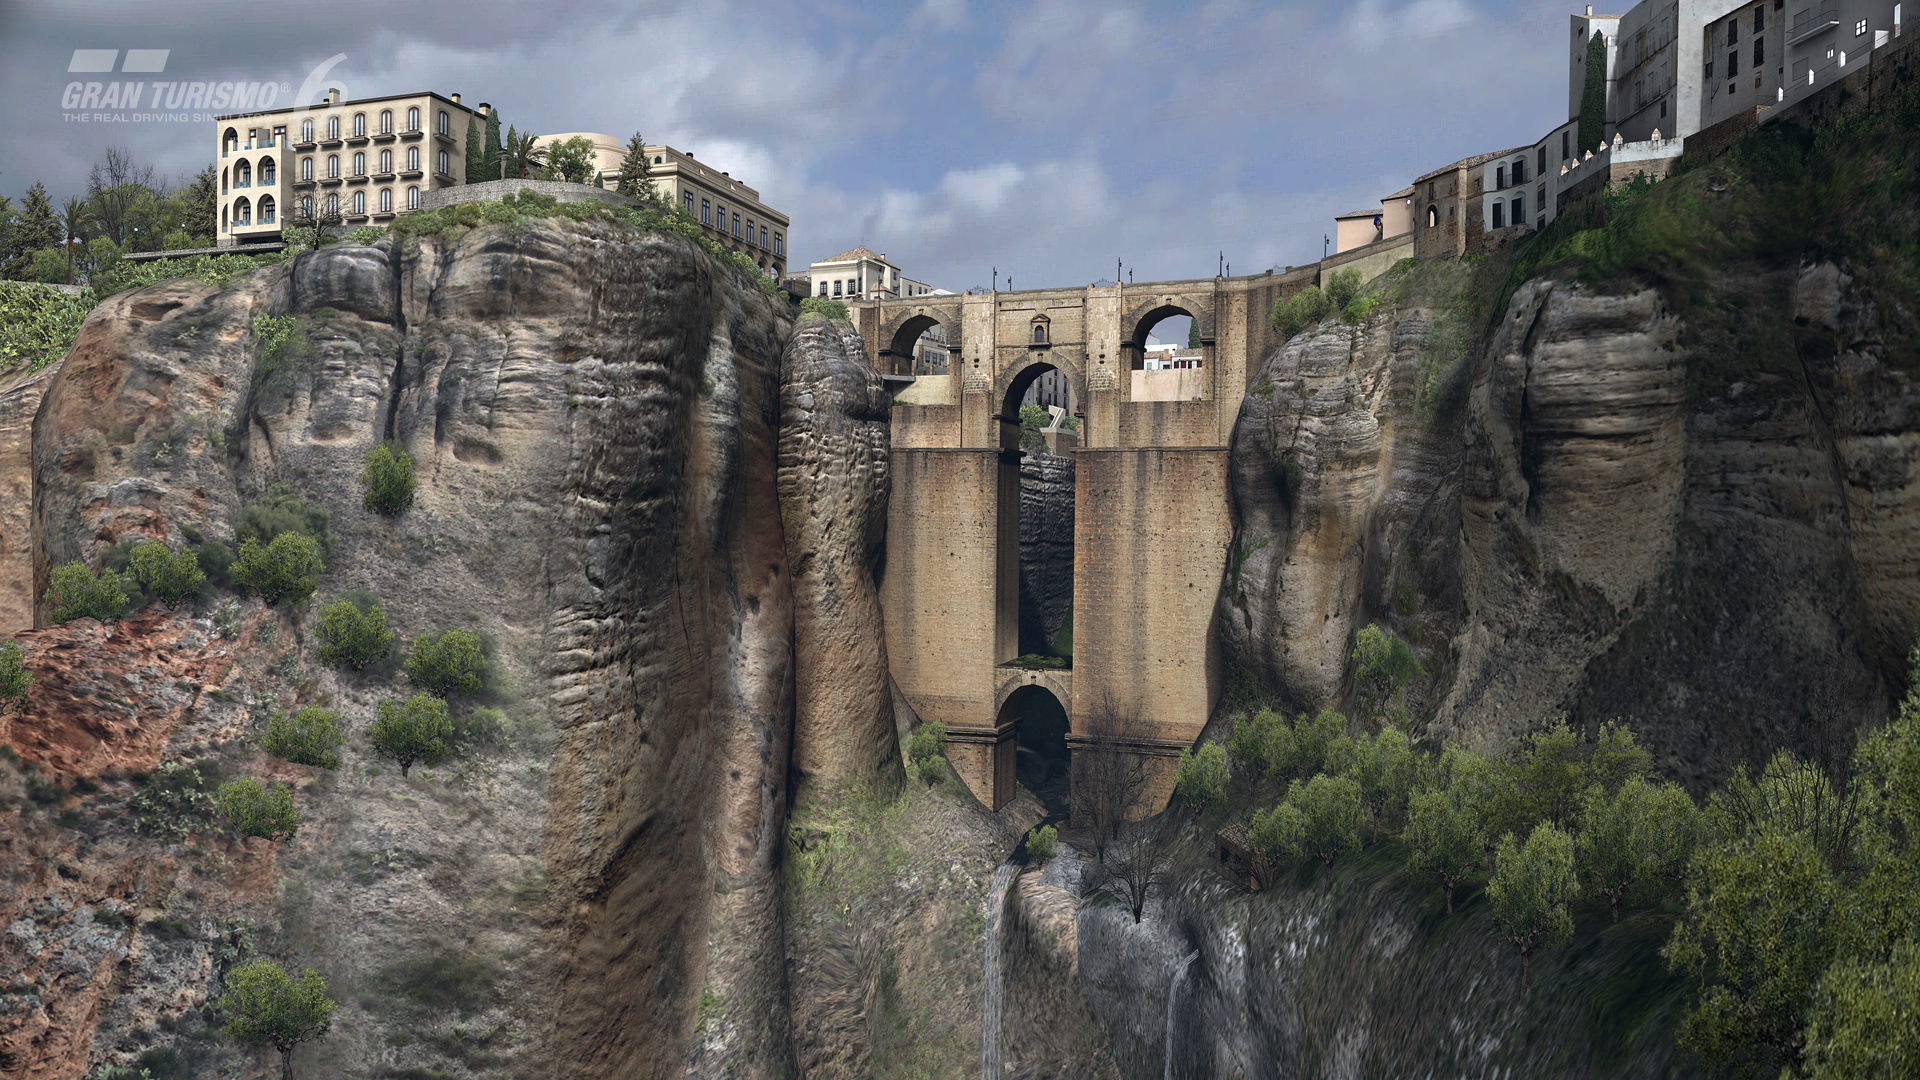 Gran Turismo 6 Ronda screenshot 2